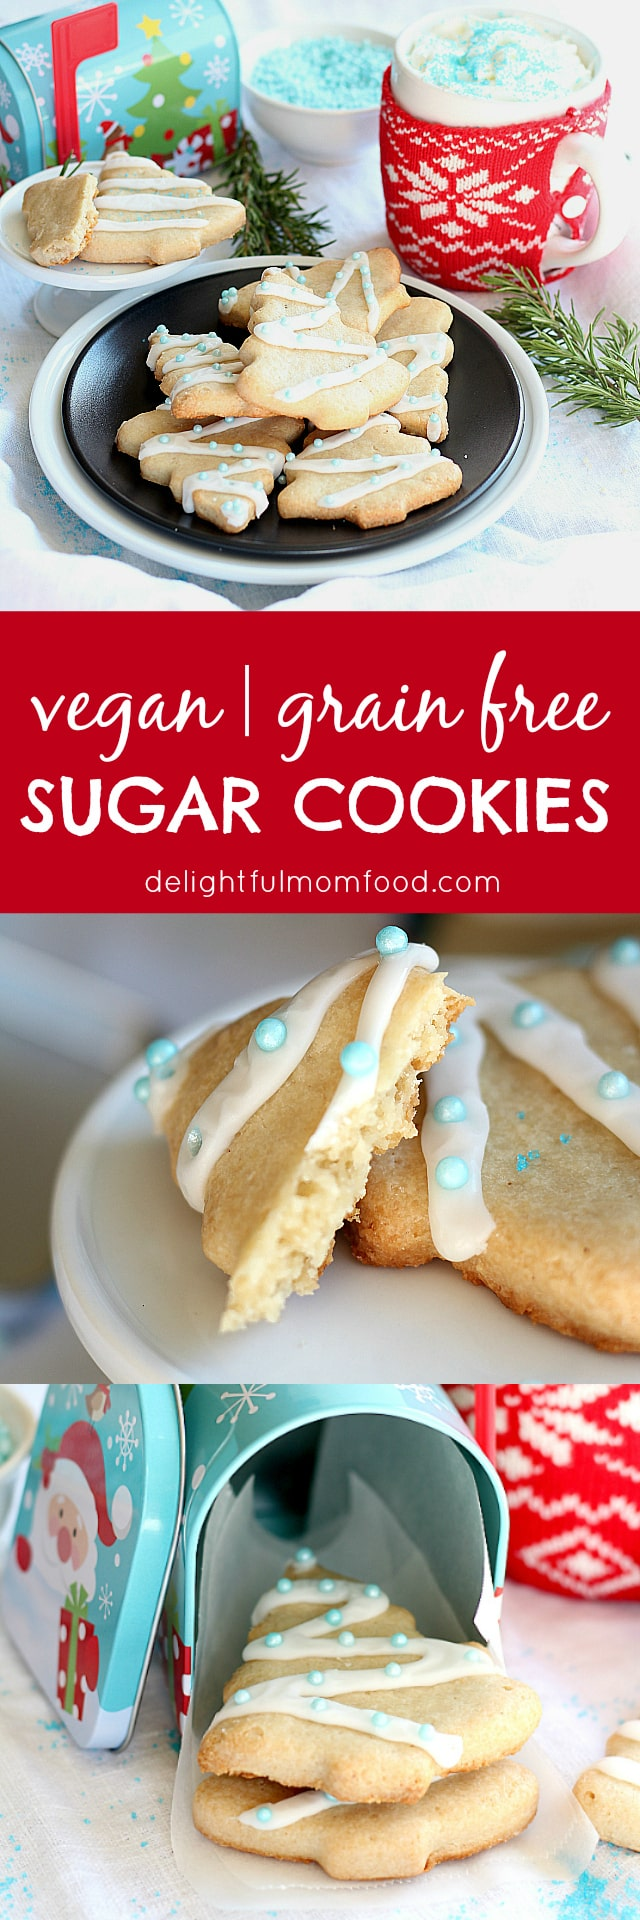 Healthy + light in sugar + grain free vegan sugar cookies... Yes please! A healthy Christmas cookie recipe for this holiday season or any day of the year!